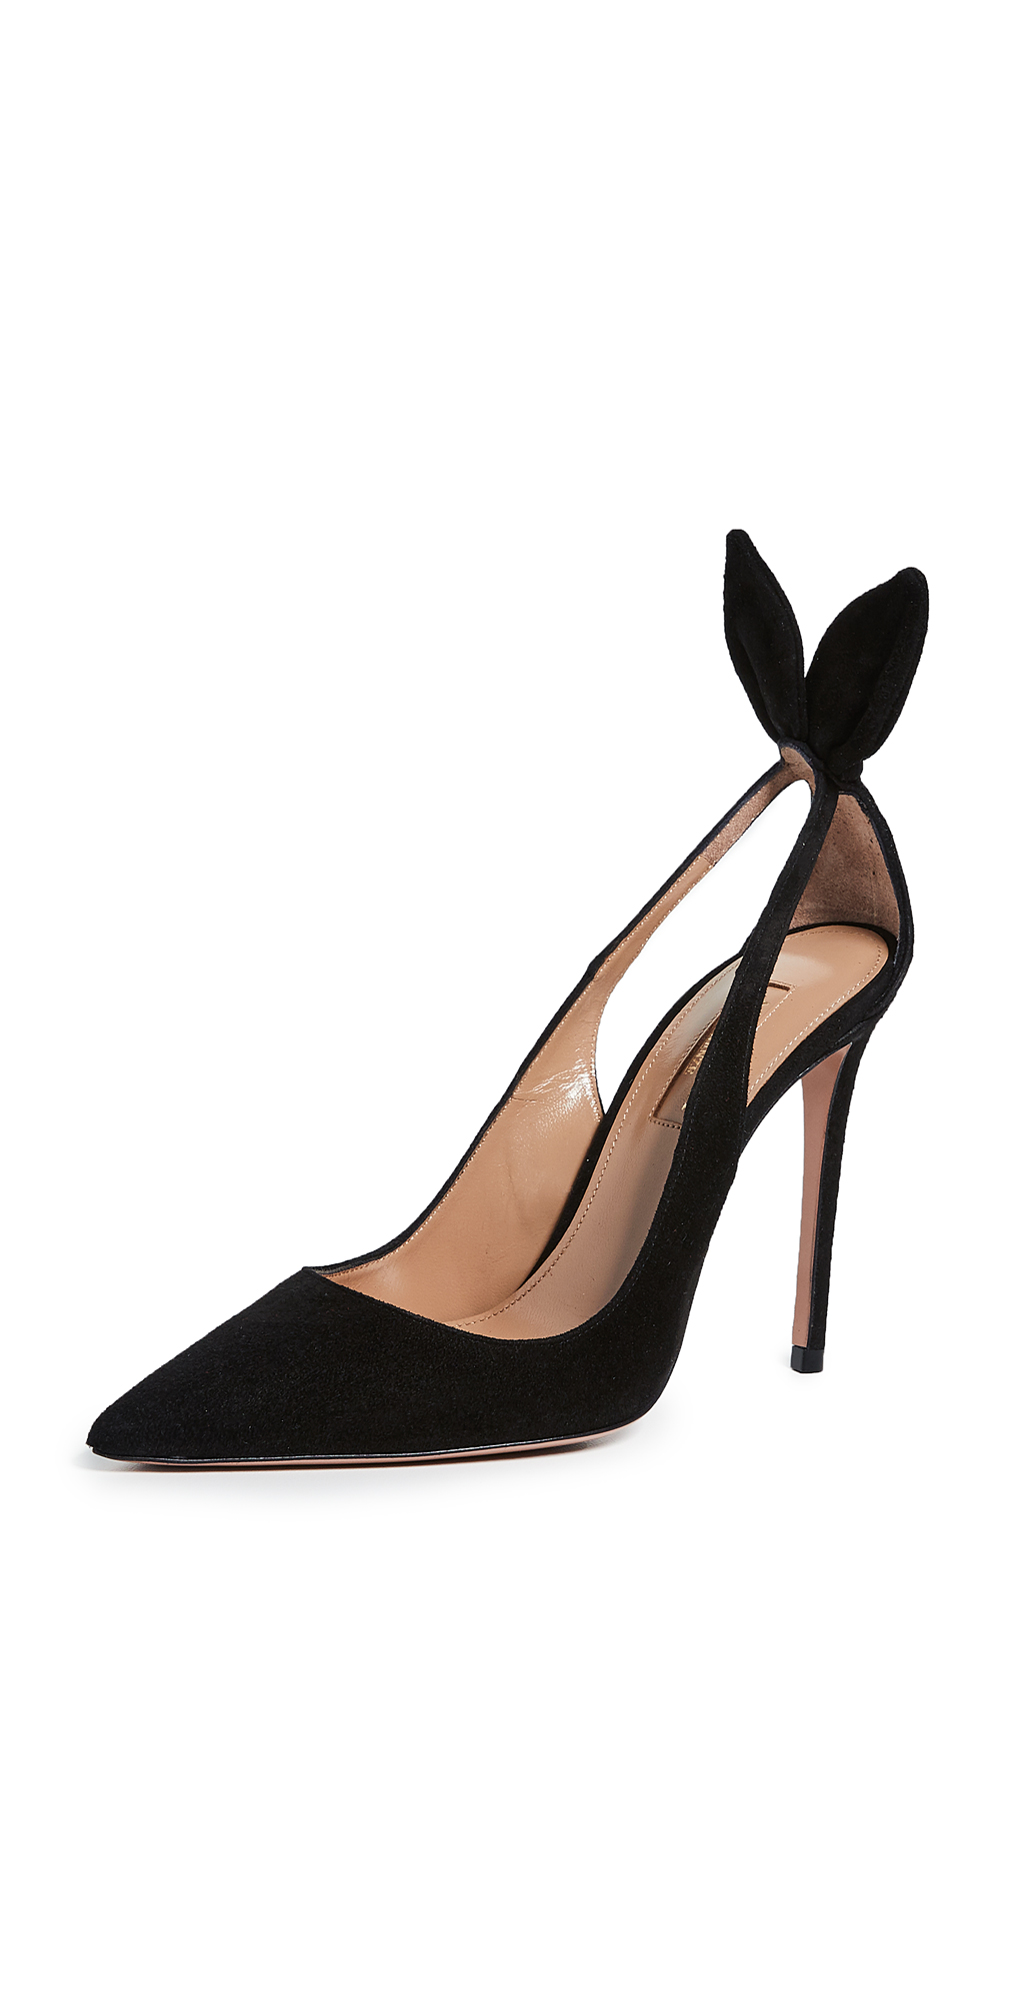 Aquazzura Bow Tie Pumps 105mm